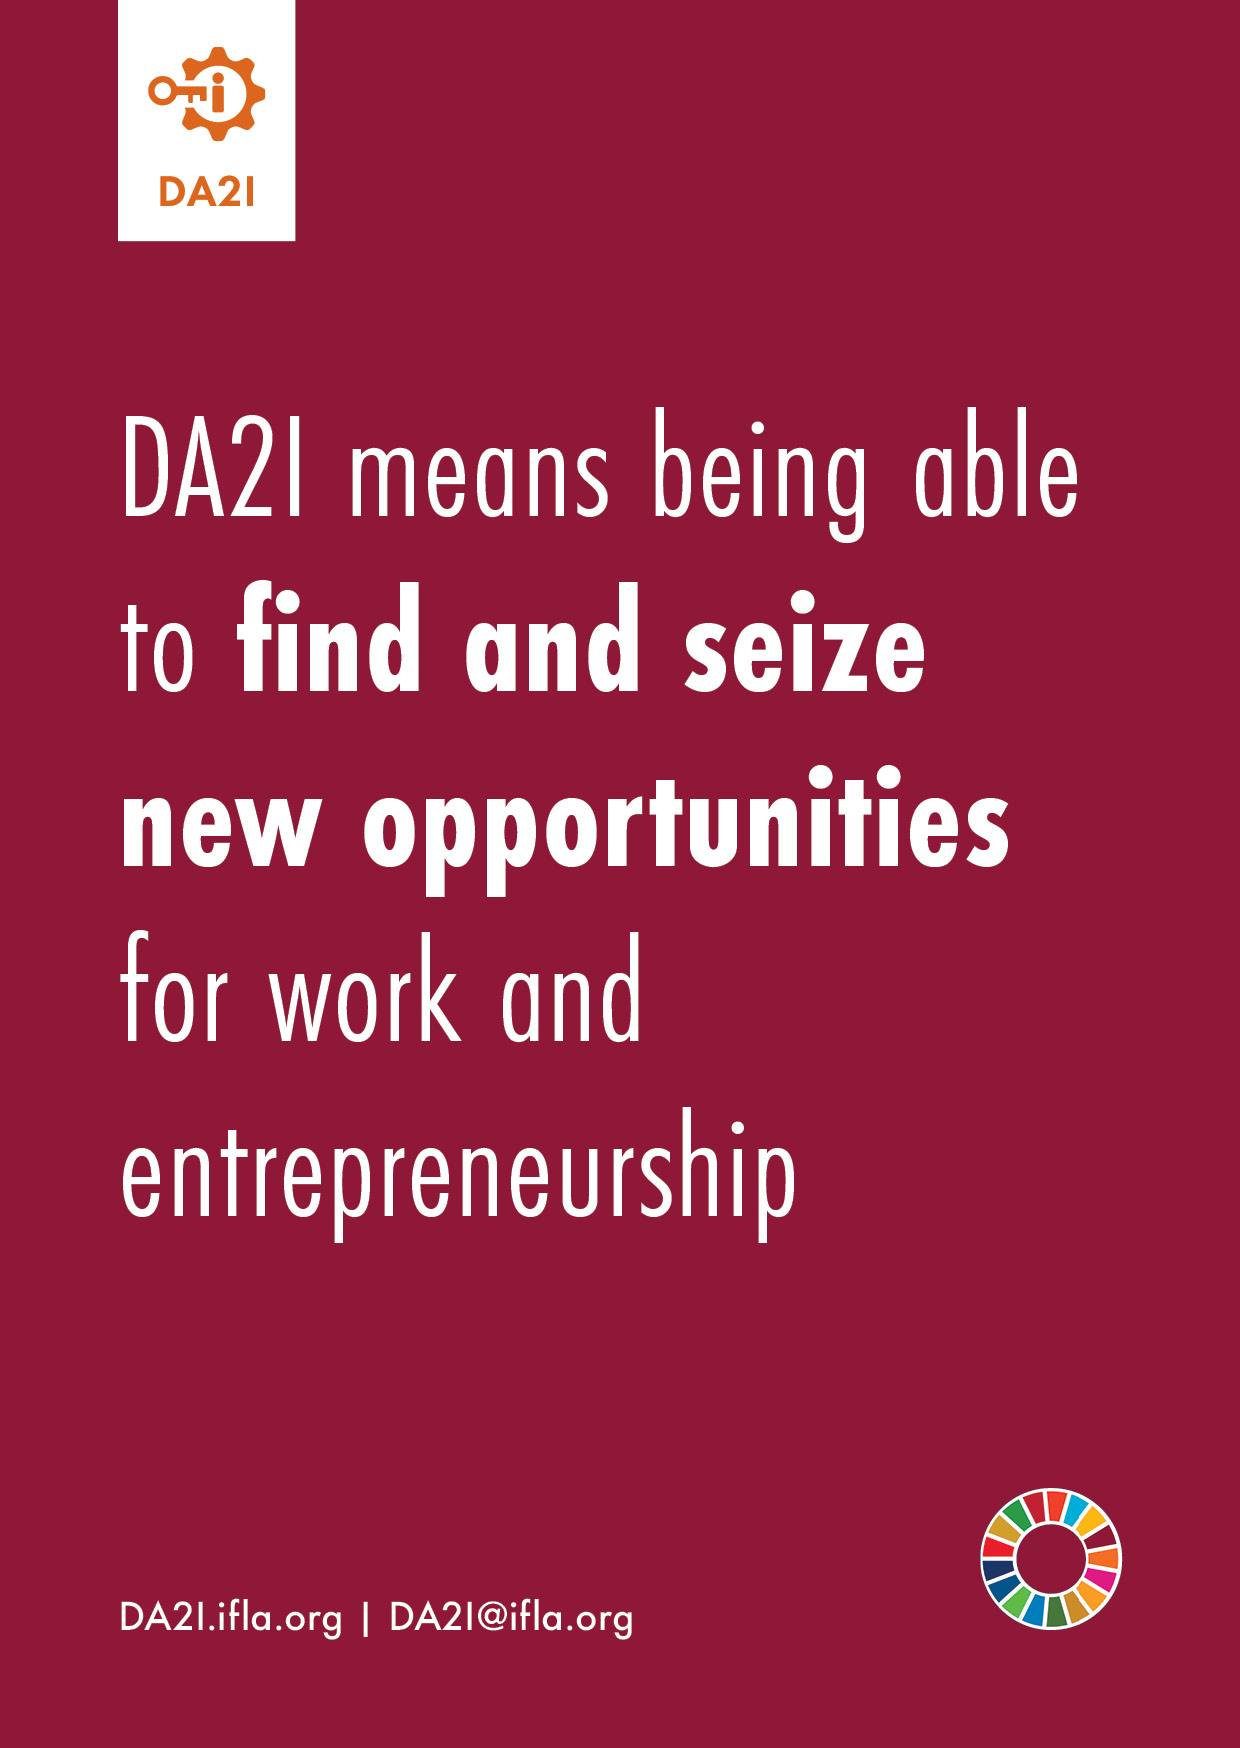 DA2I means being able to find and seize new opportunities for work and entrepreneurship